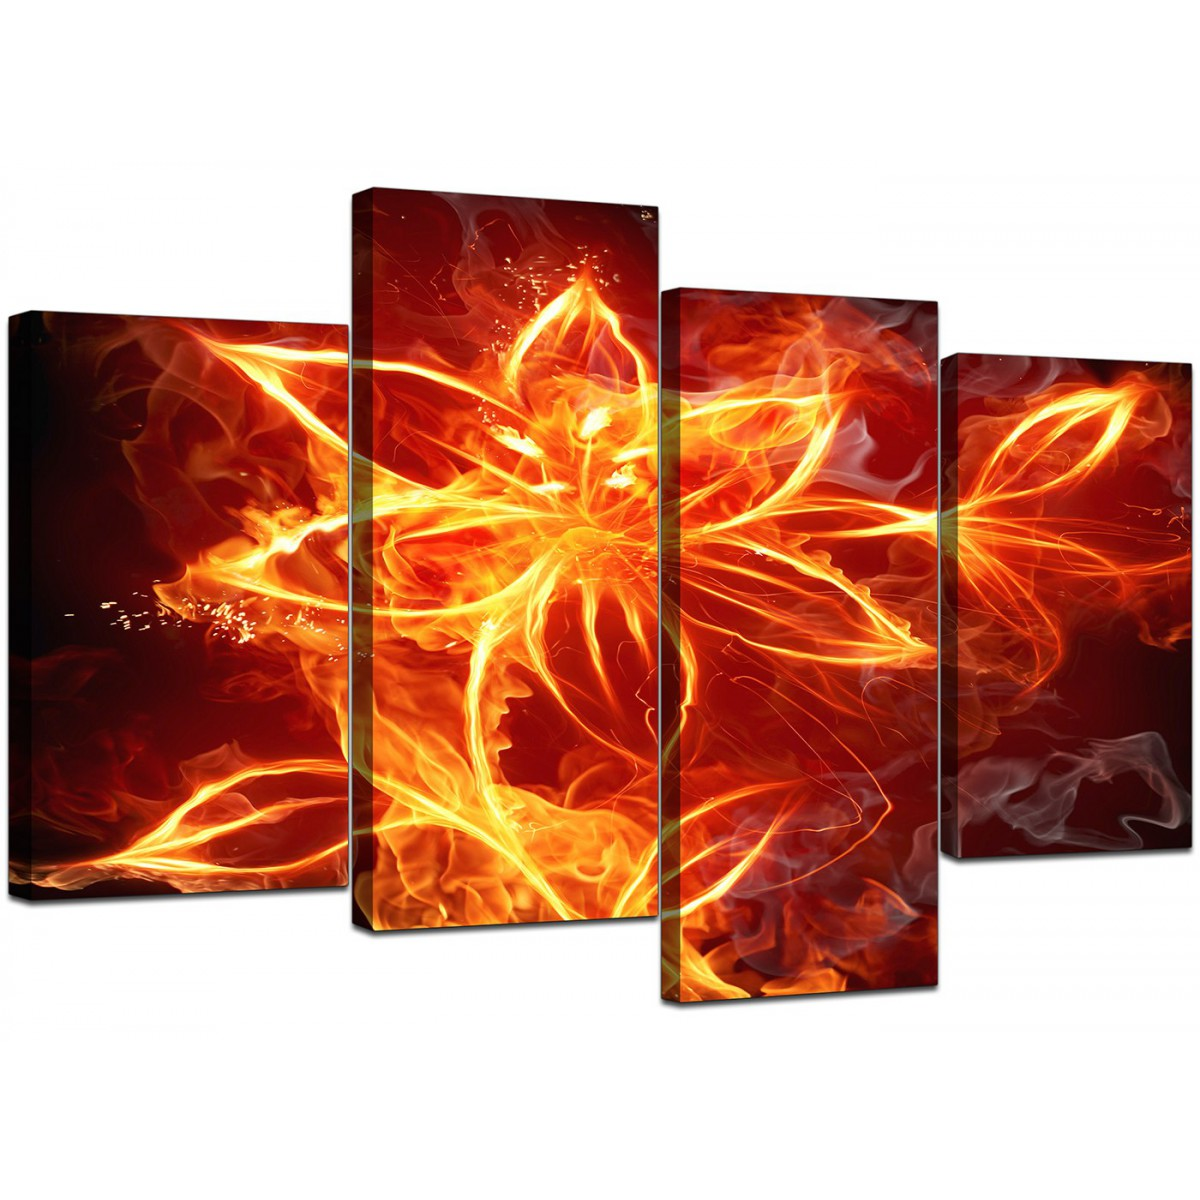 Flaming Fire Flower Orange Black Abstract Canvas Multi 4 Panel 130cm 4063